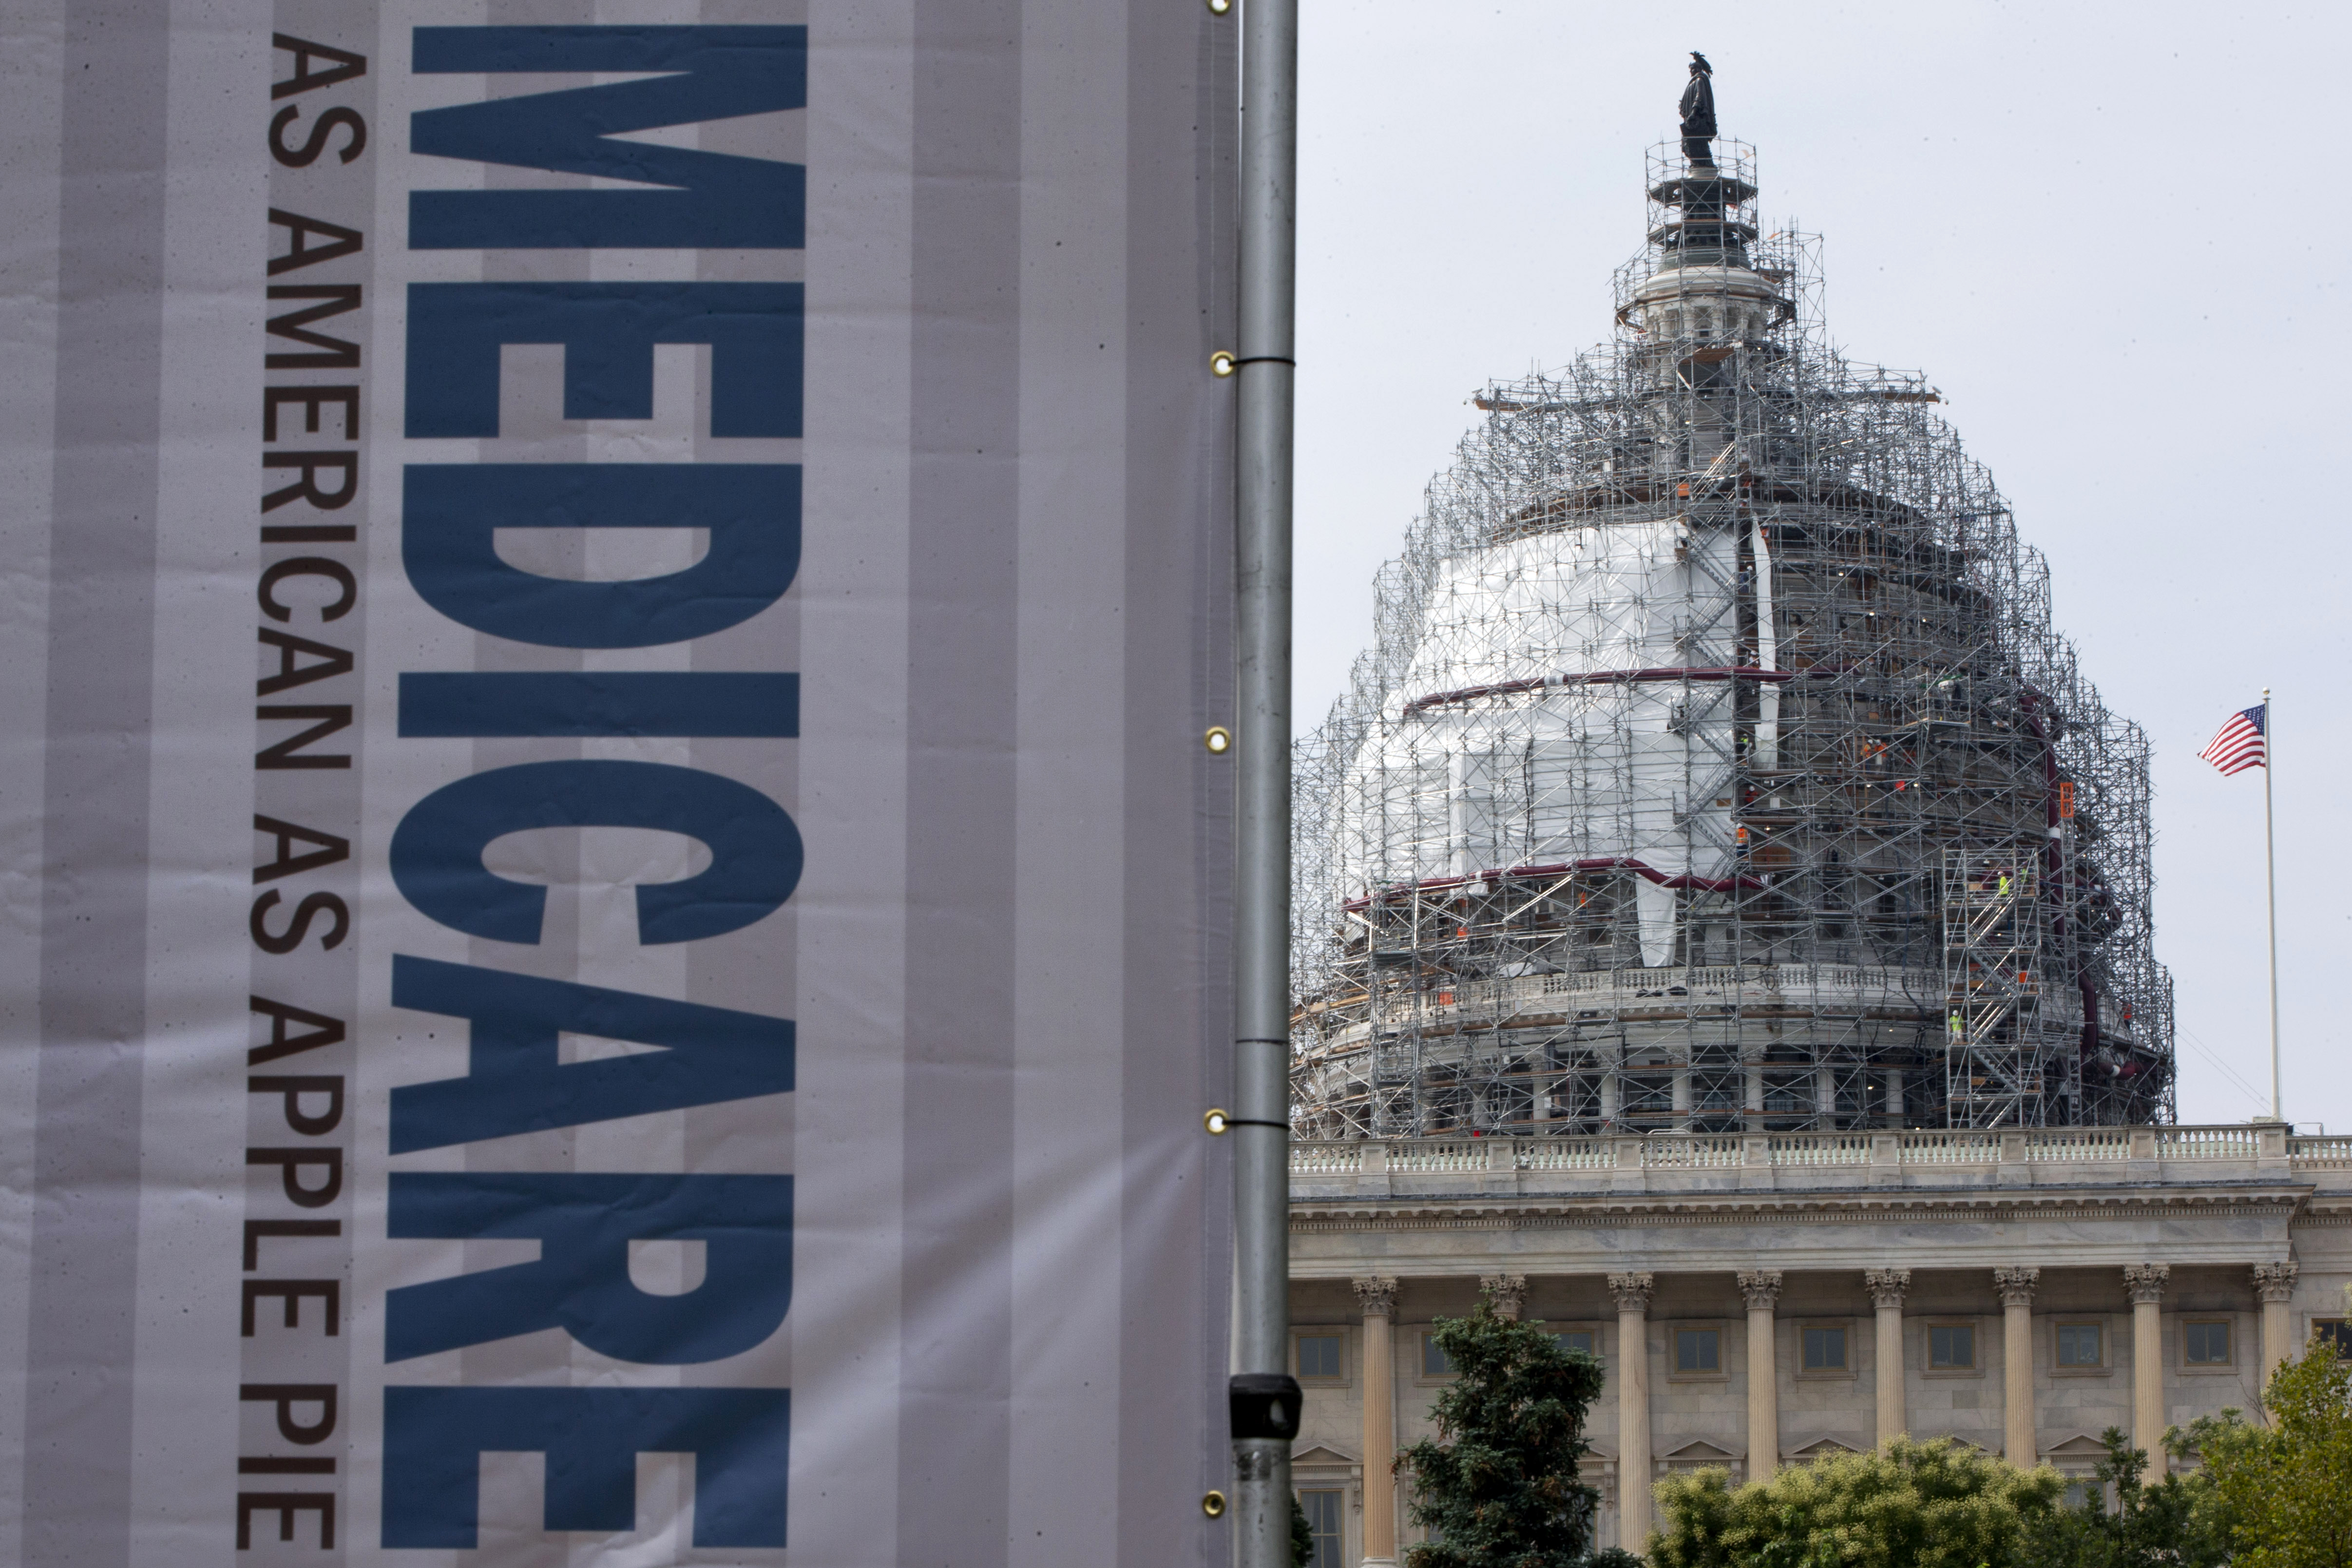 Medicare premiums set to rise: Will you pay more in 2016?